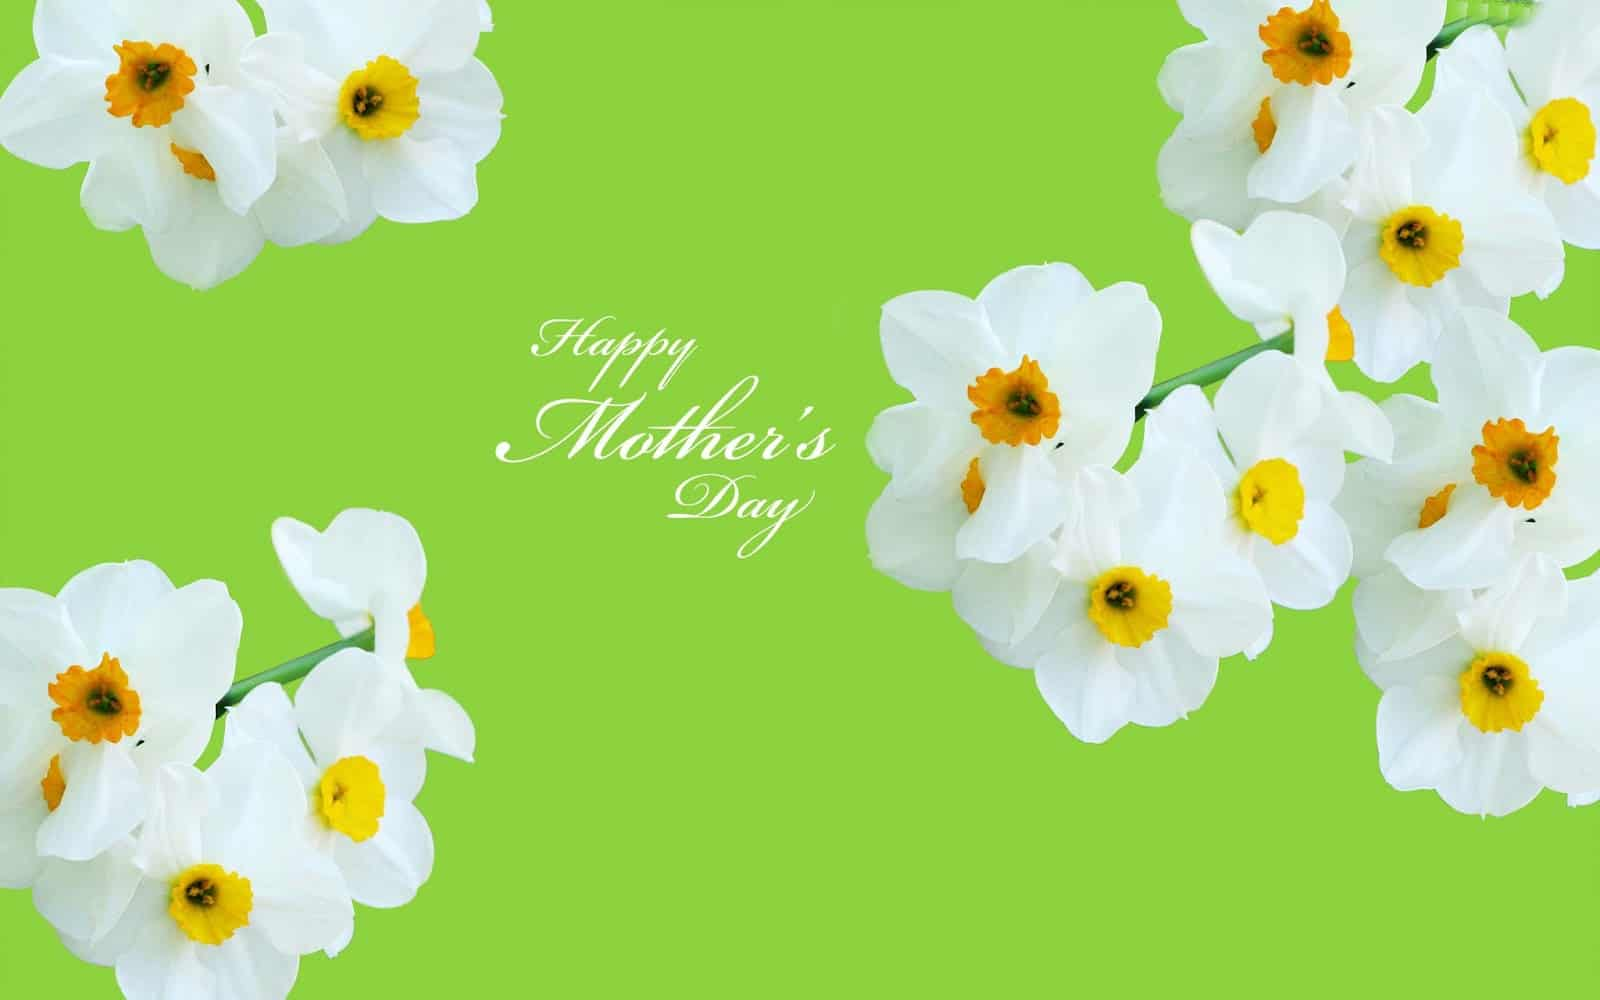 Happy Mother's Day Pictures